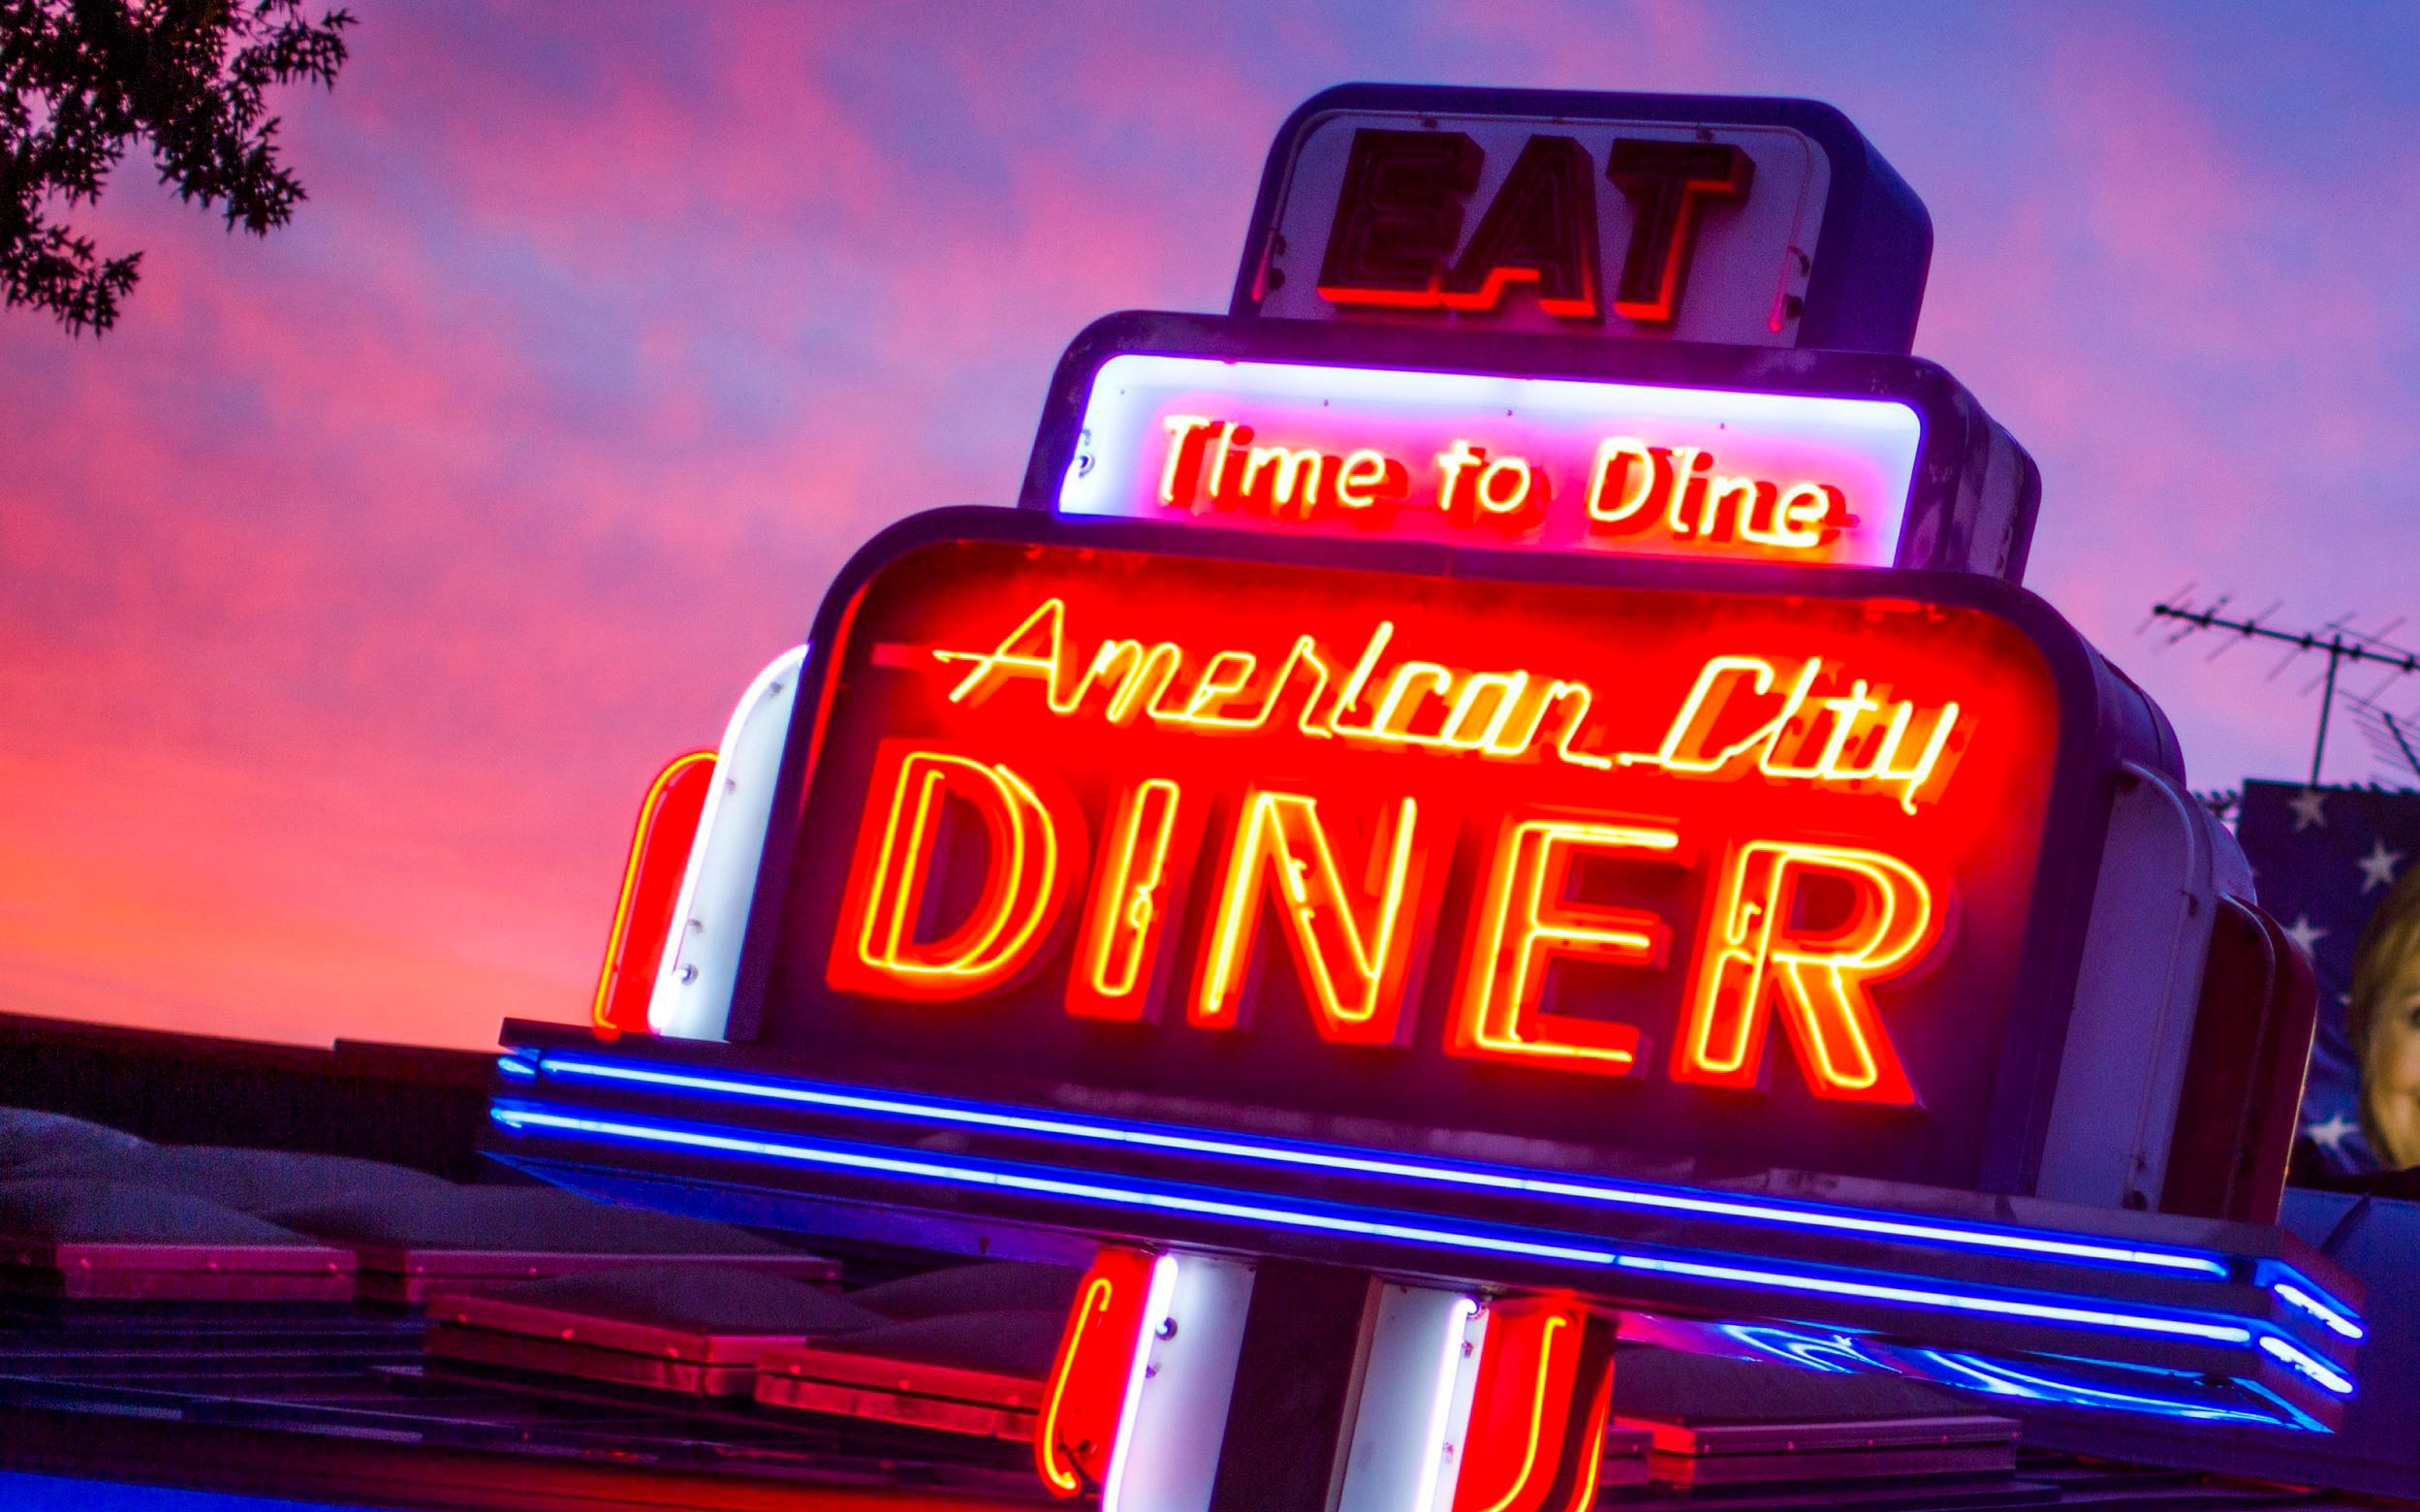 Want to own a restaurant in Iowa? More than 100 are for sale or lease right now